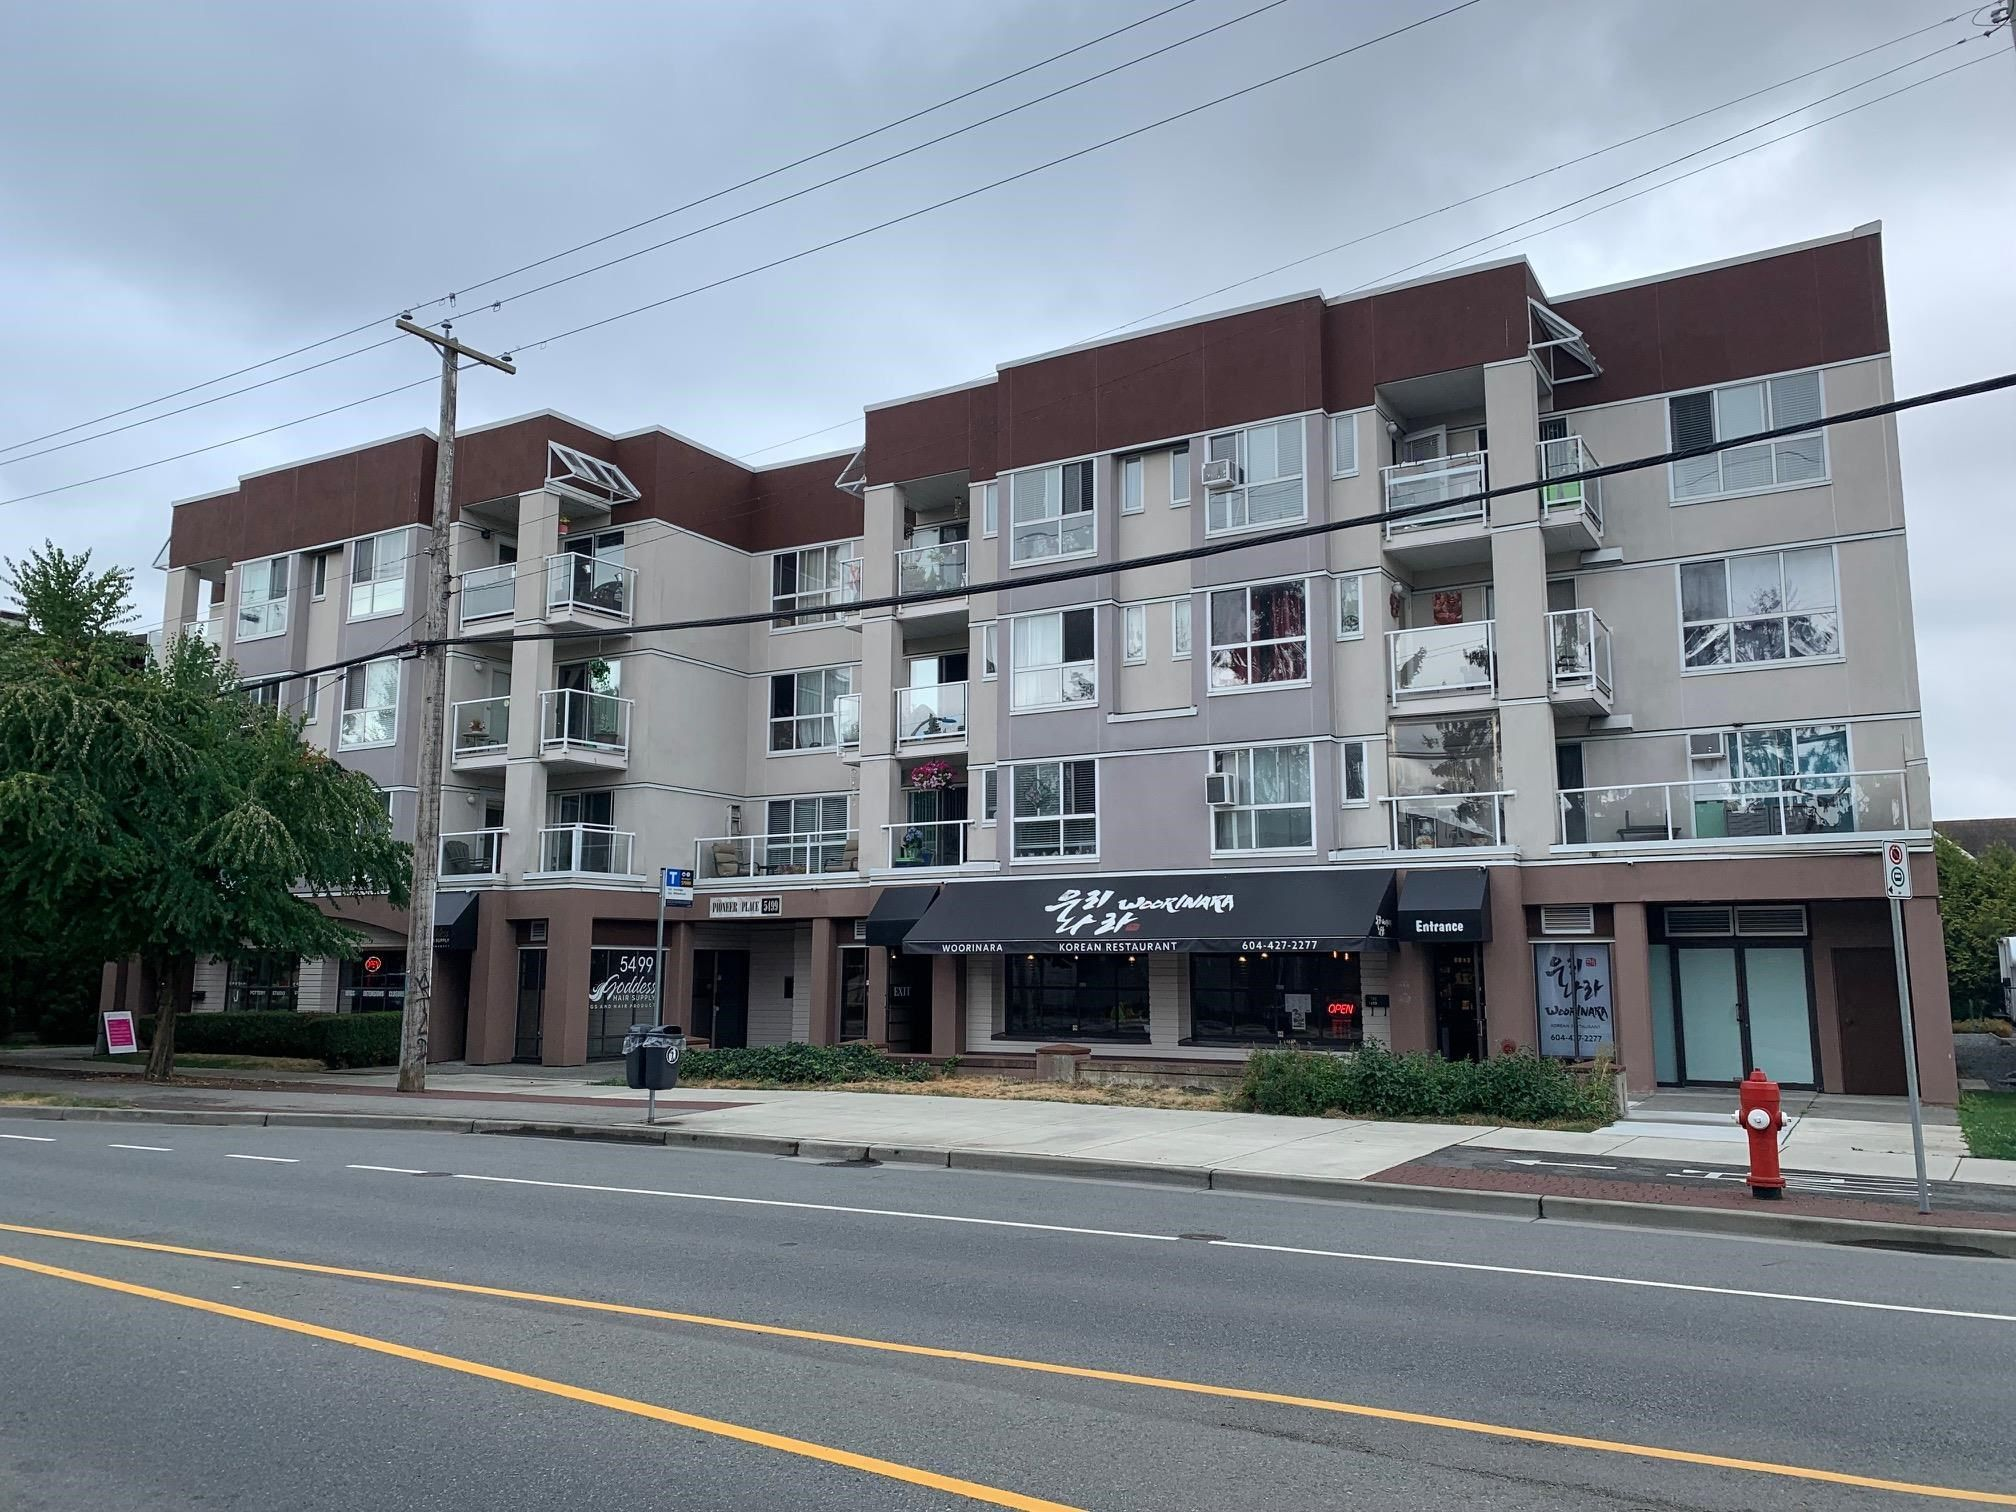 """Main Photo: 302 5499 203 Street in Langley: Langley City Condo for sale in """"Pioneer Place"""" : MLS®# R2609450"""